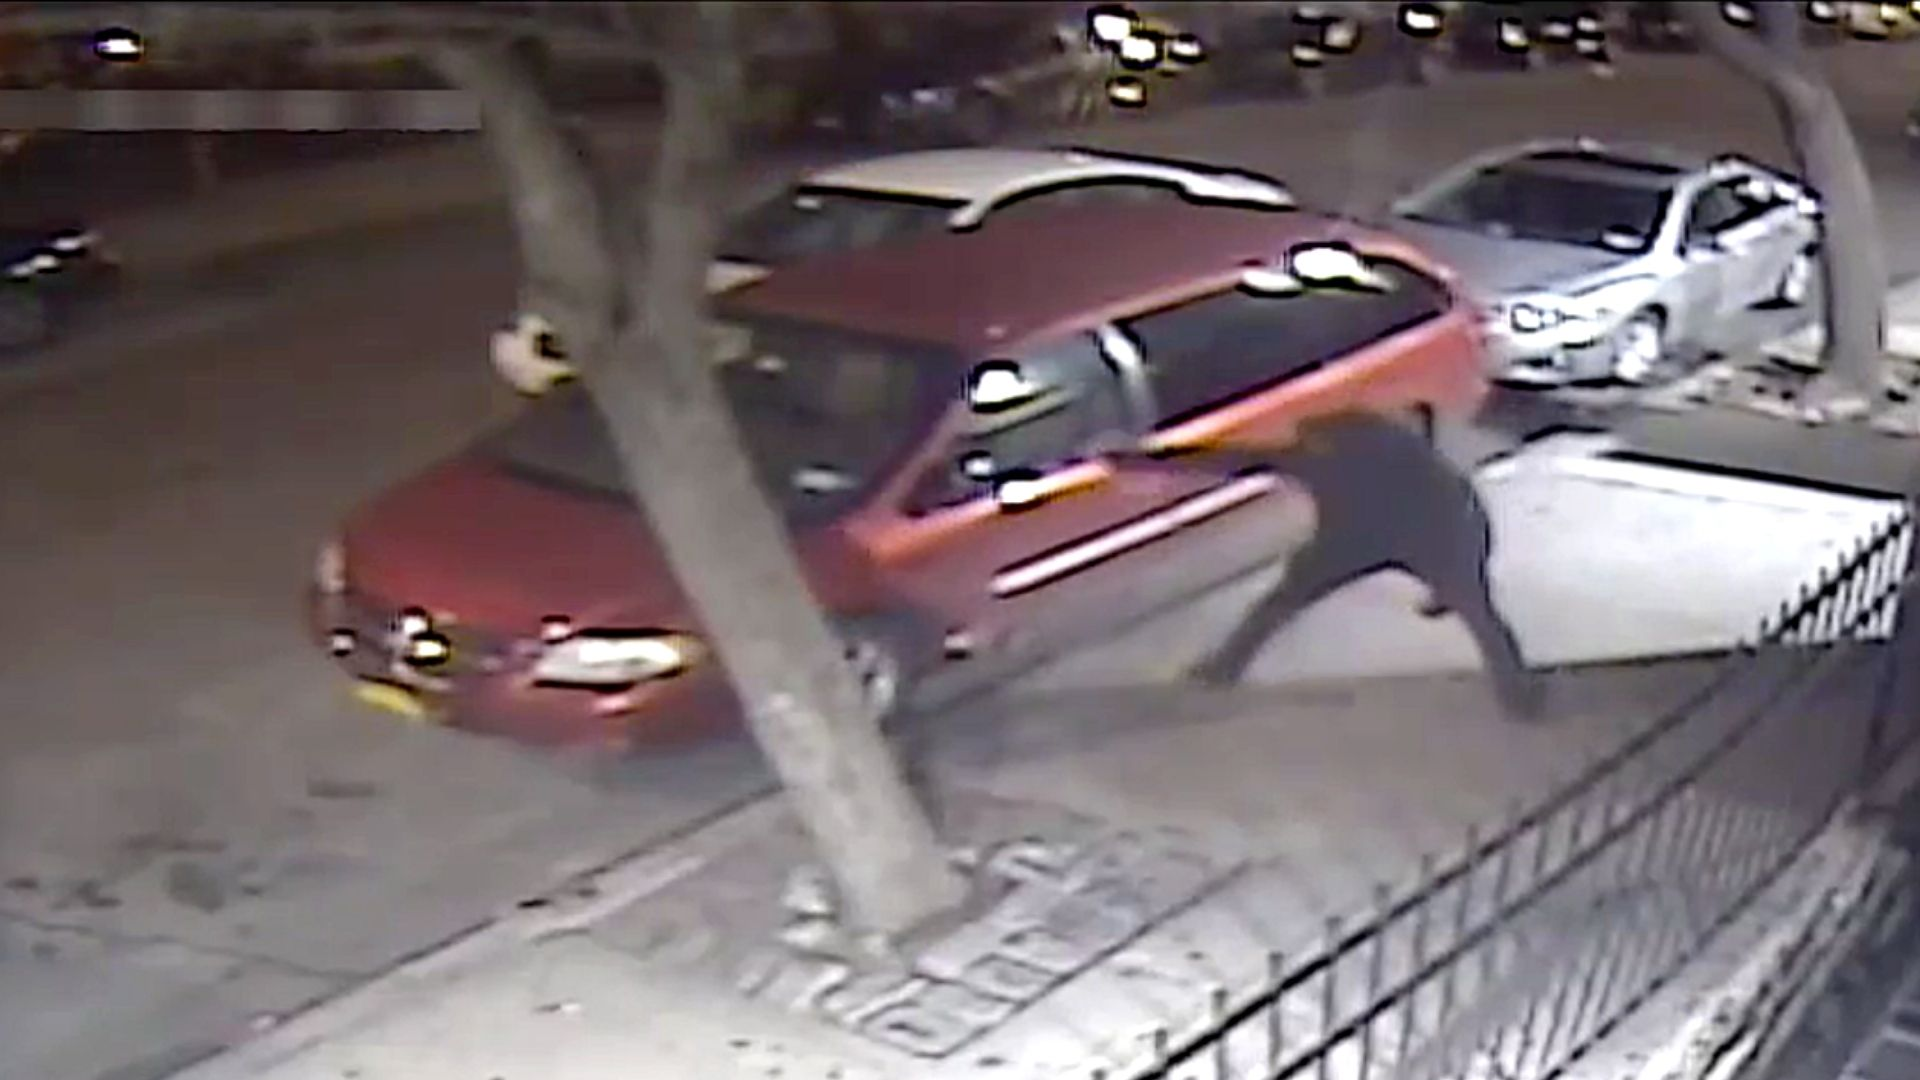 Still from a surveillance video of a man involved in a shootout with another man near the intersection of Frederick Douglass Boulevard and West 151st Street in Harlem on Saturday, March 27, 2021, according to police.